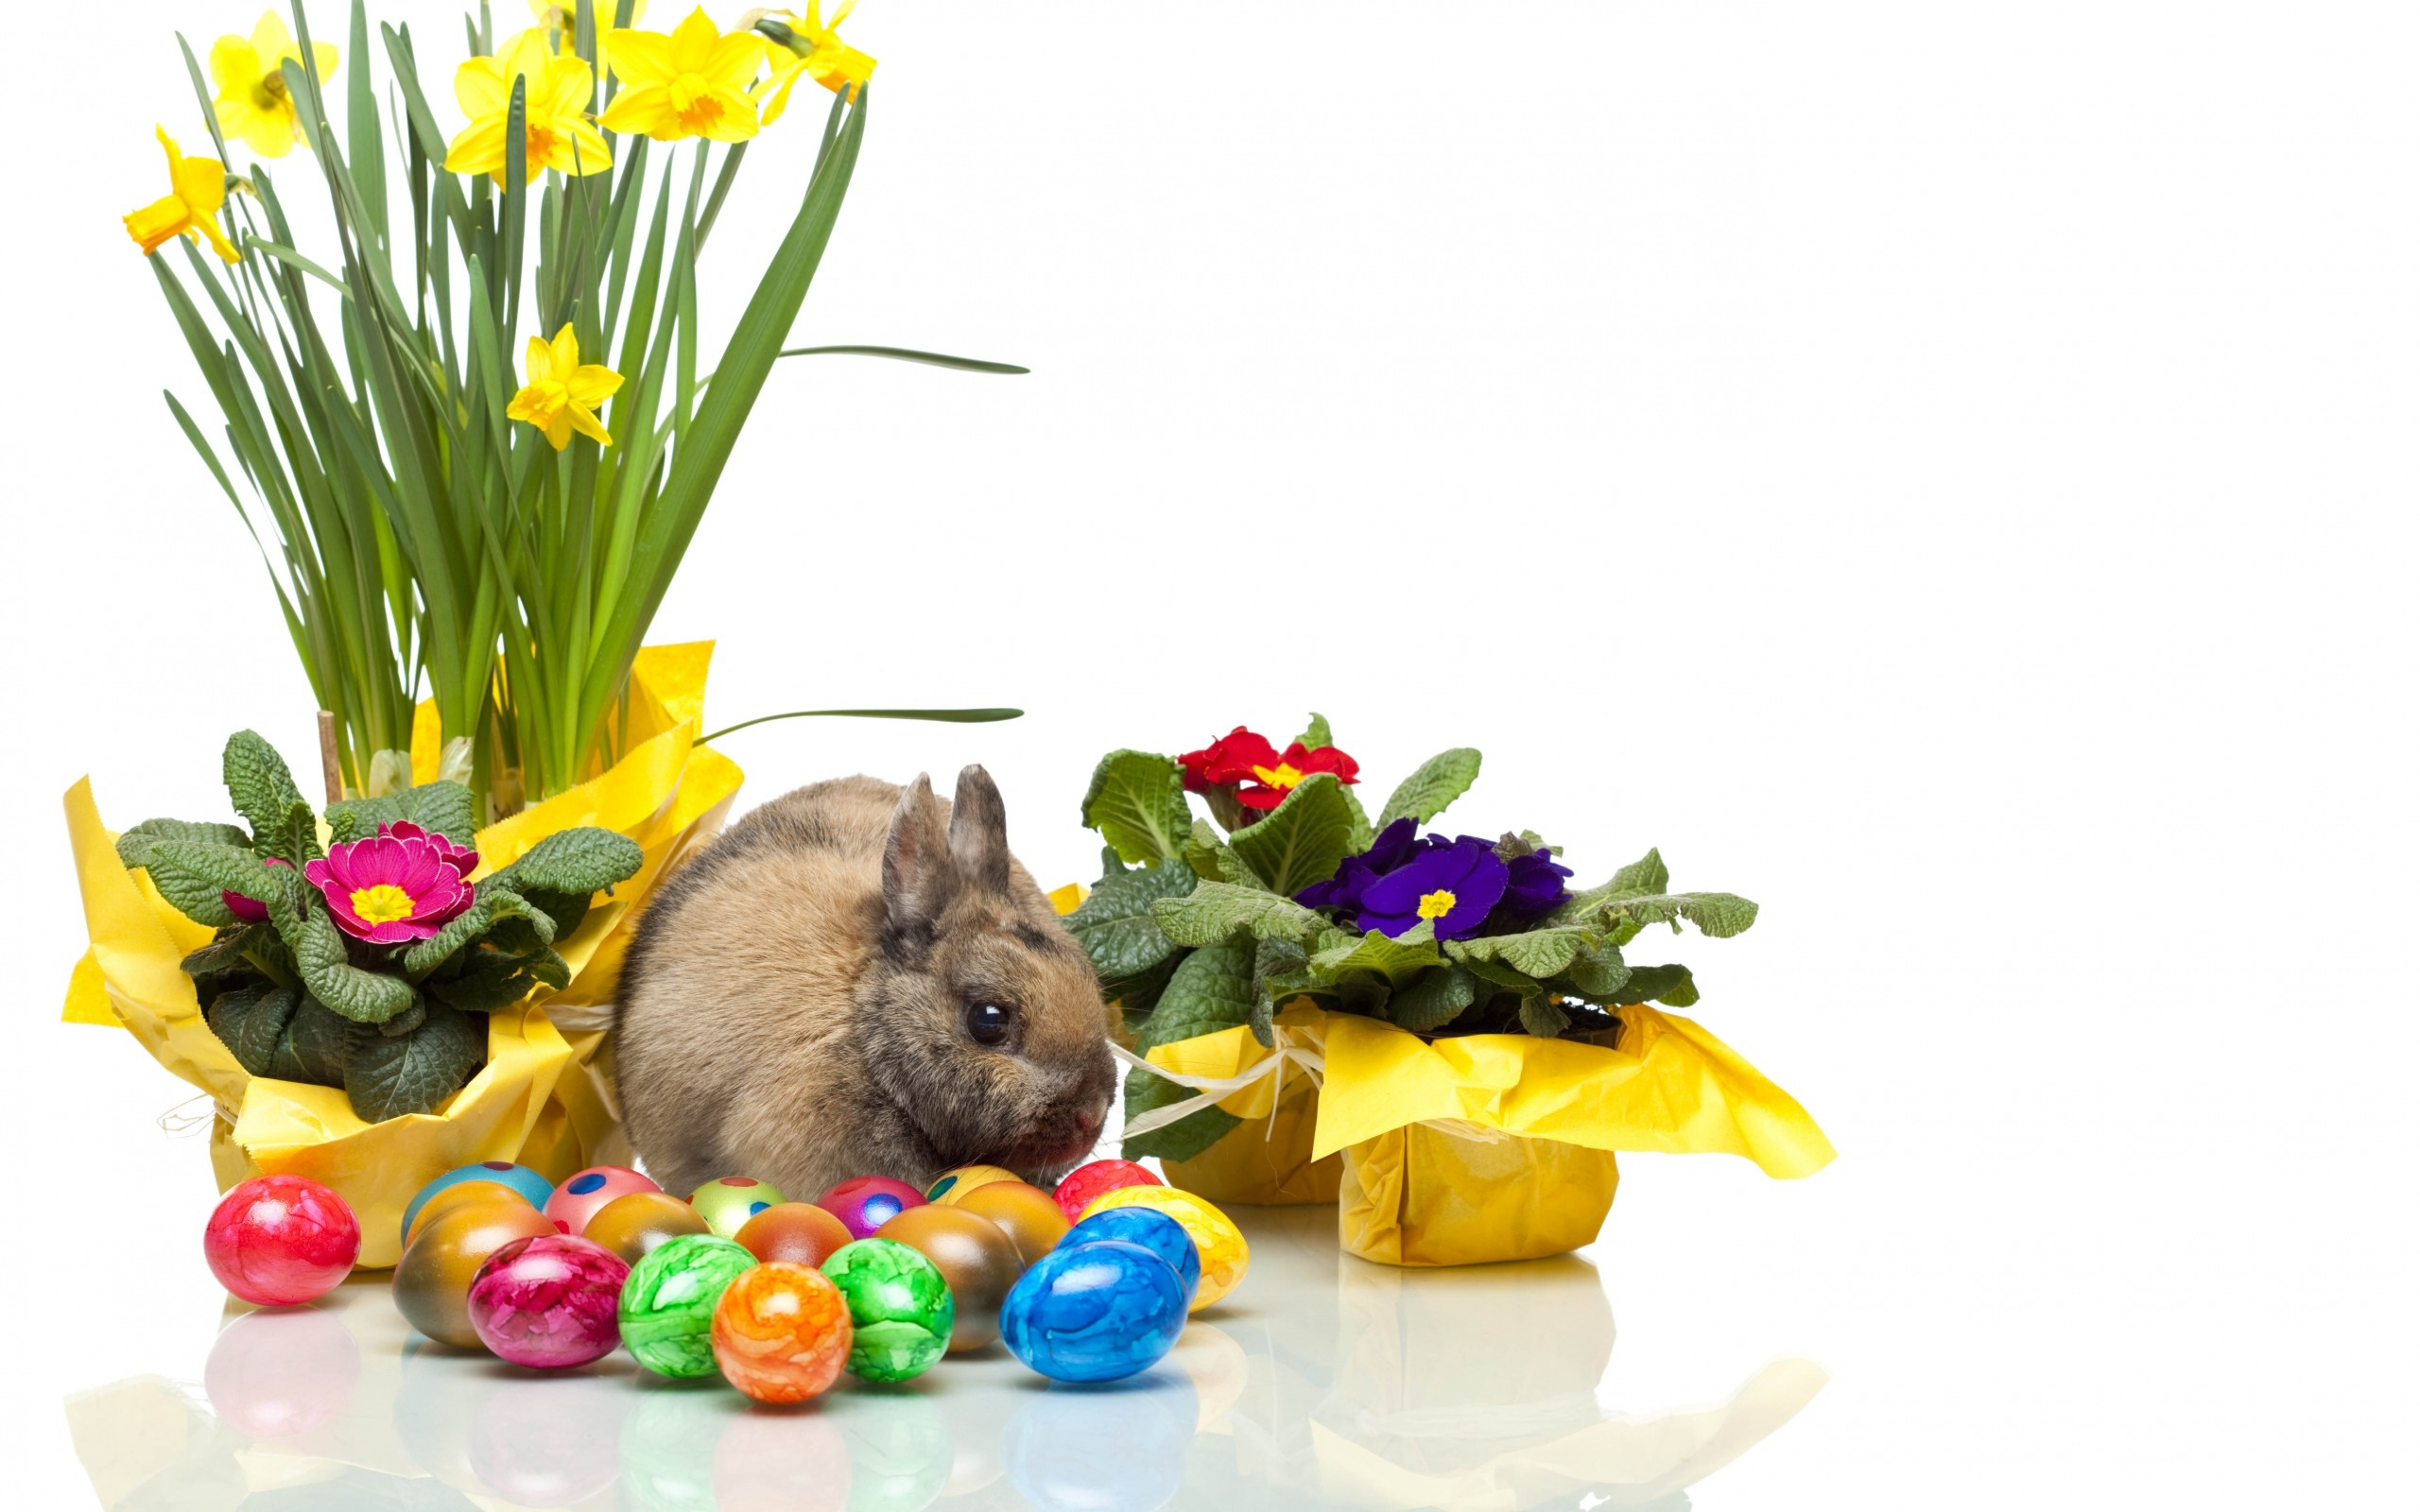 Wallpaper easter, bunny, eggs, violets, daffodils, white  background